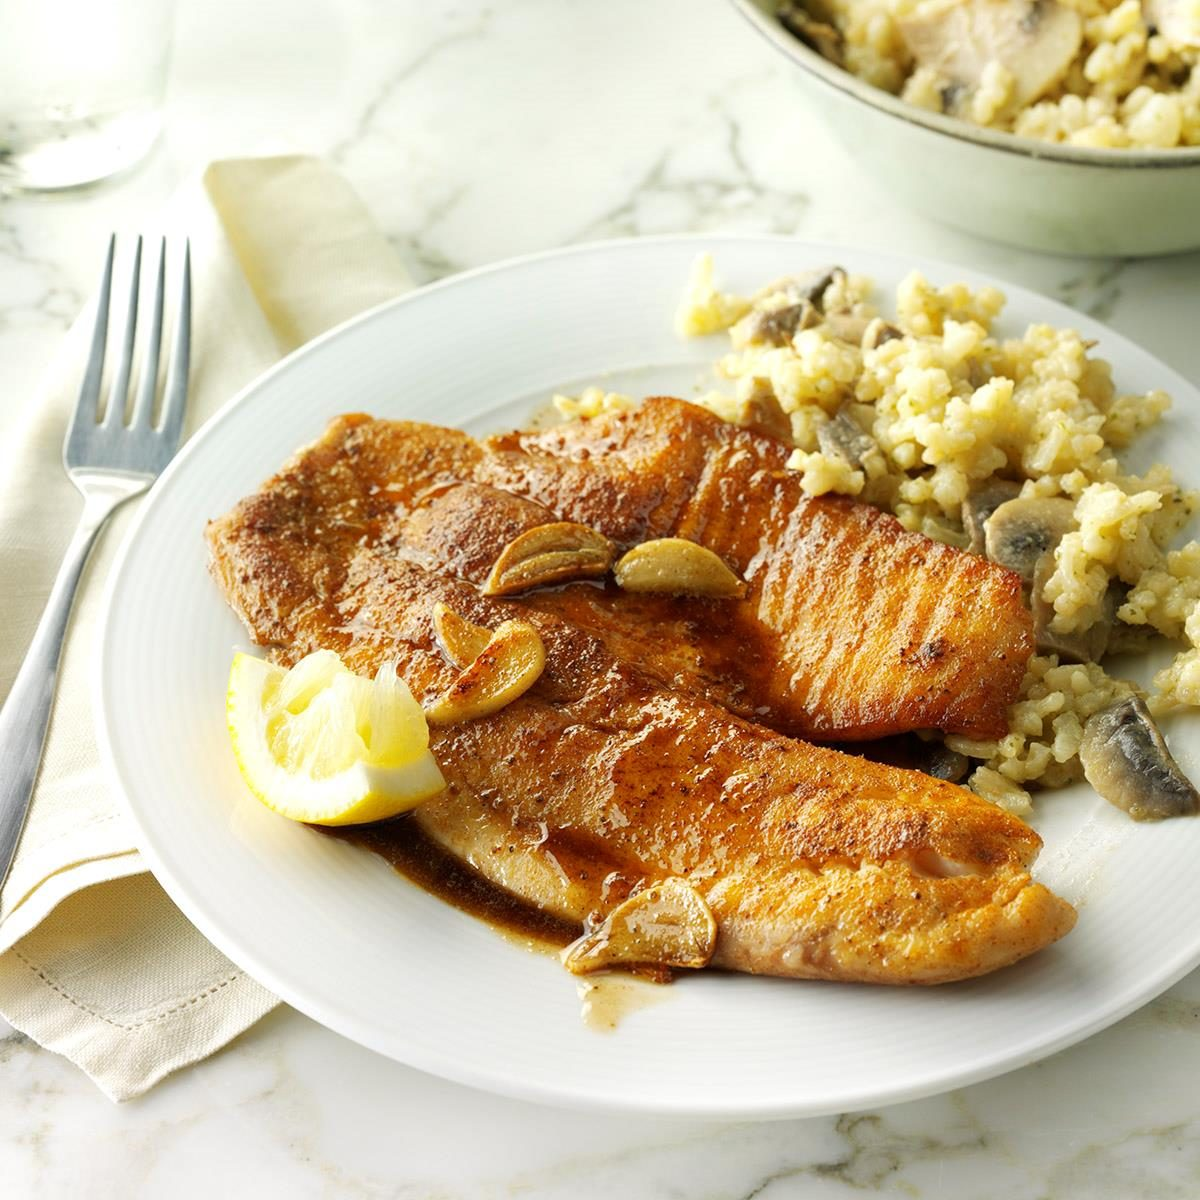 Day 16: Garlic Tilapia with Mushroom Risotto